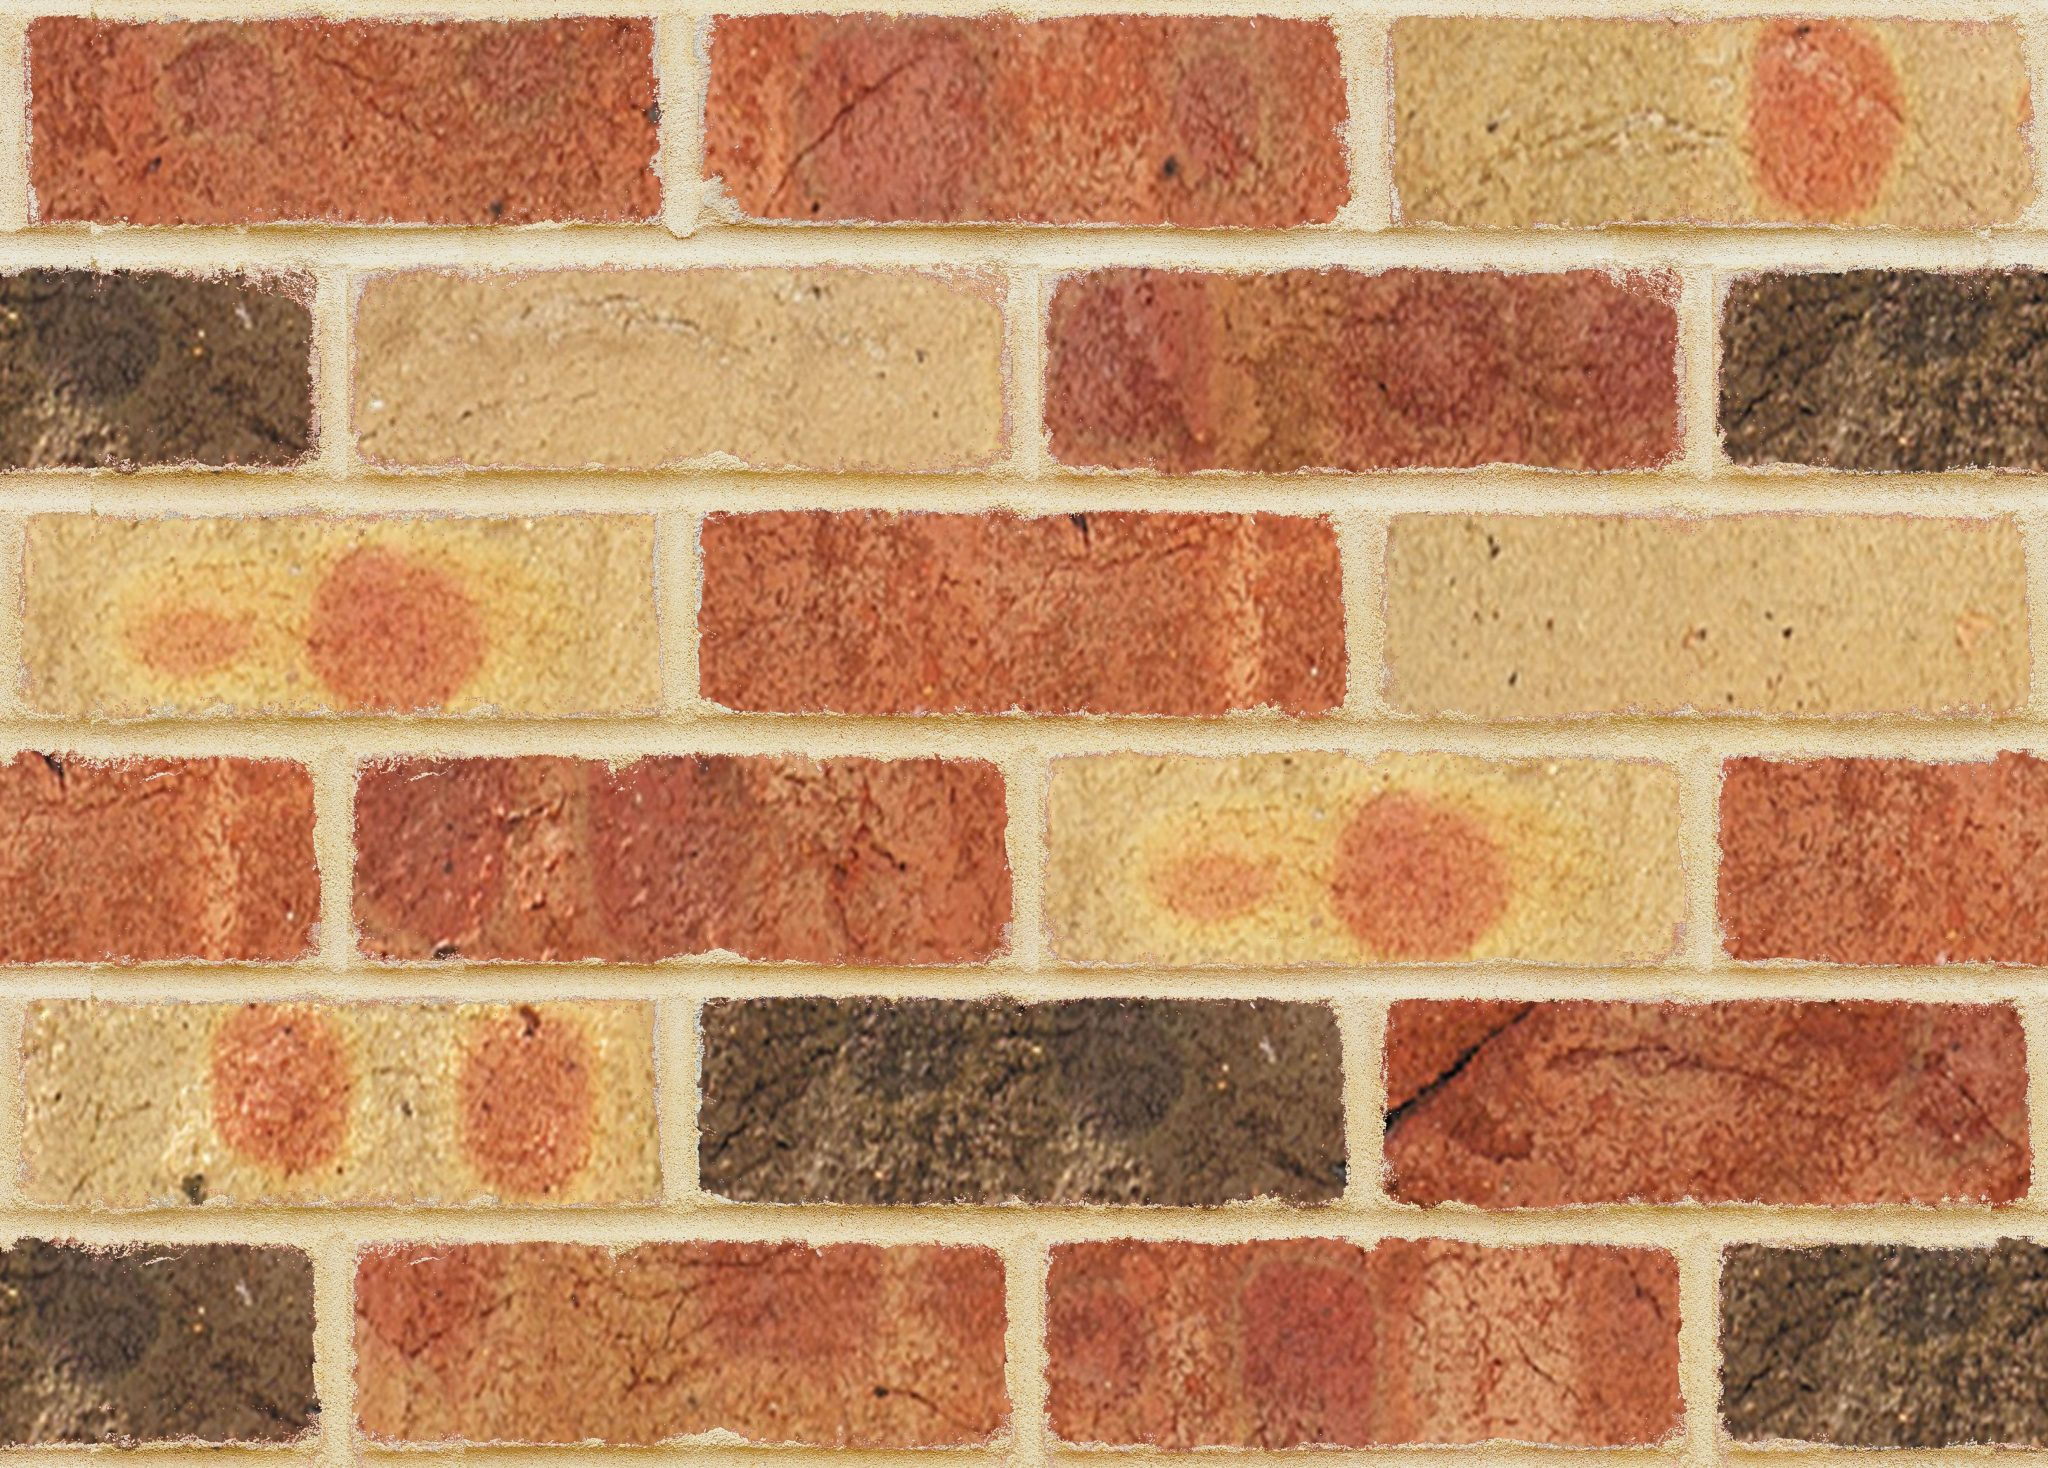 GovernorRobinson230x76-110-240 - NSW Bricks